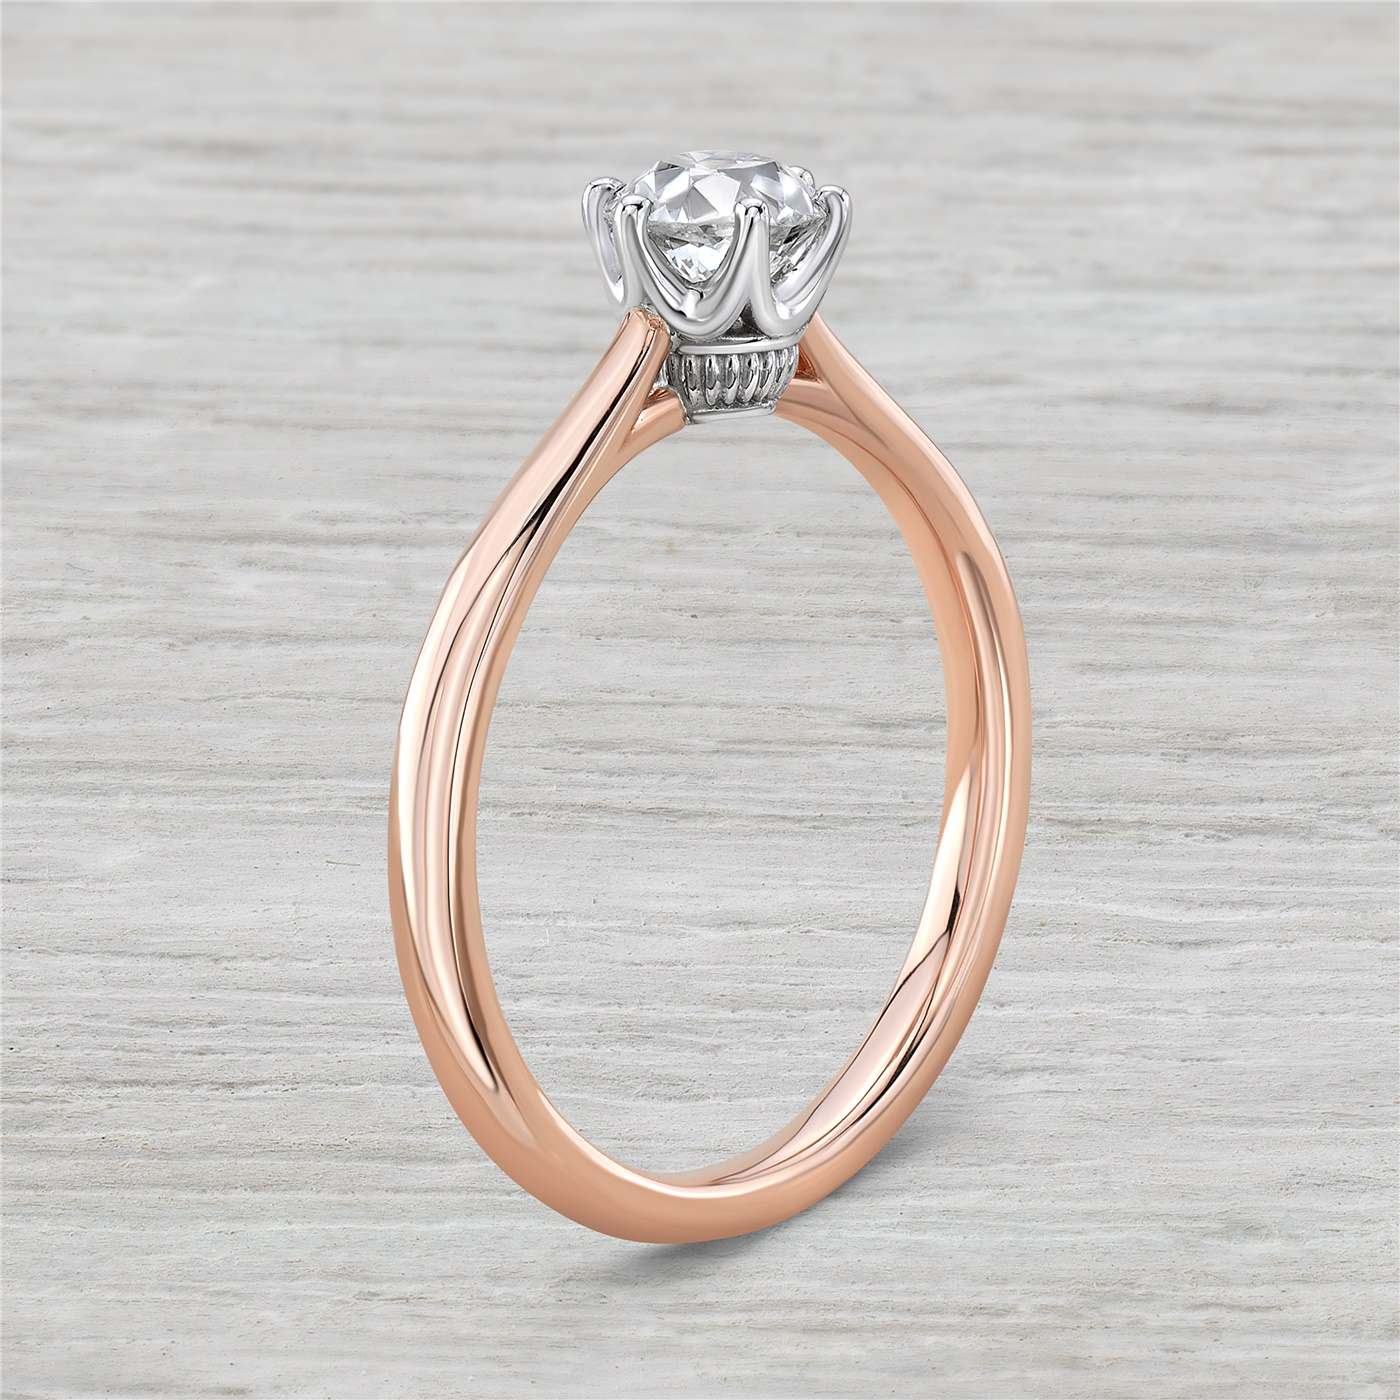 14K Rose Gold Vintage Inspired Engagement Ring With .63ct